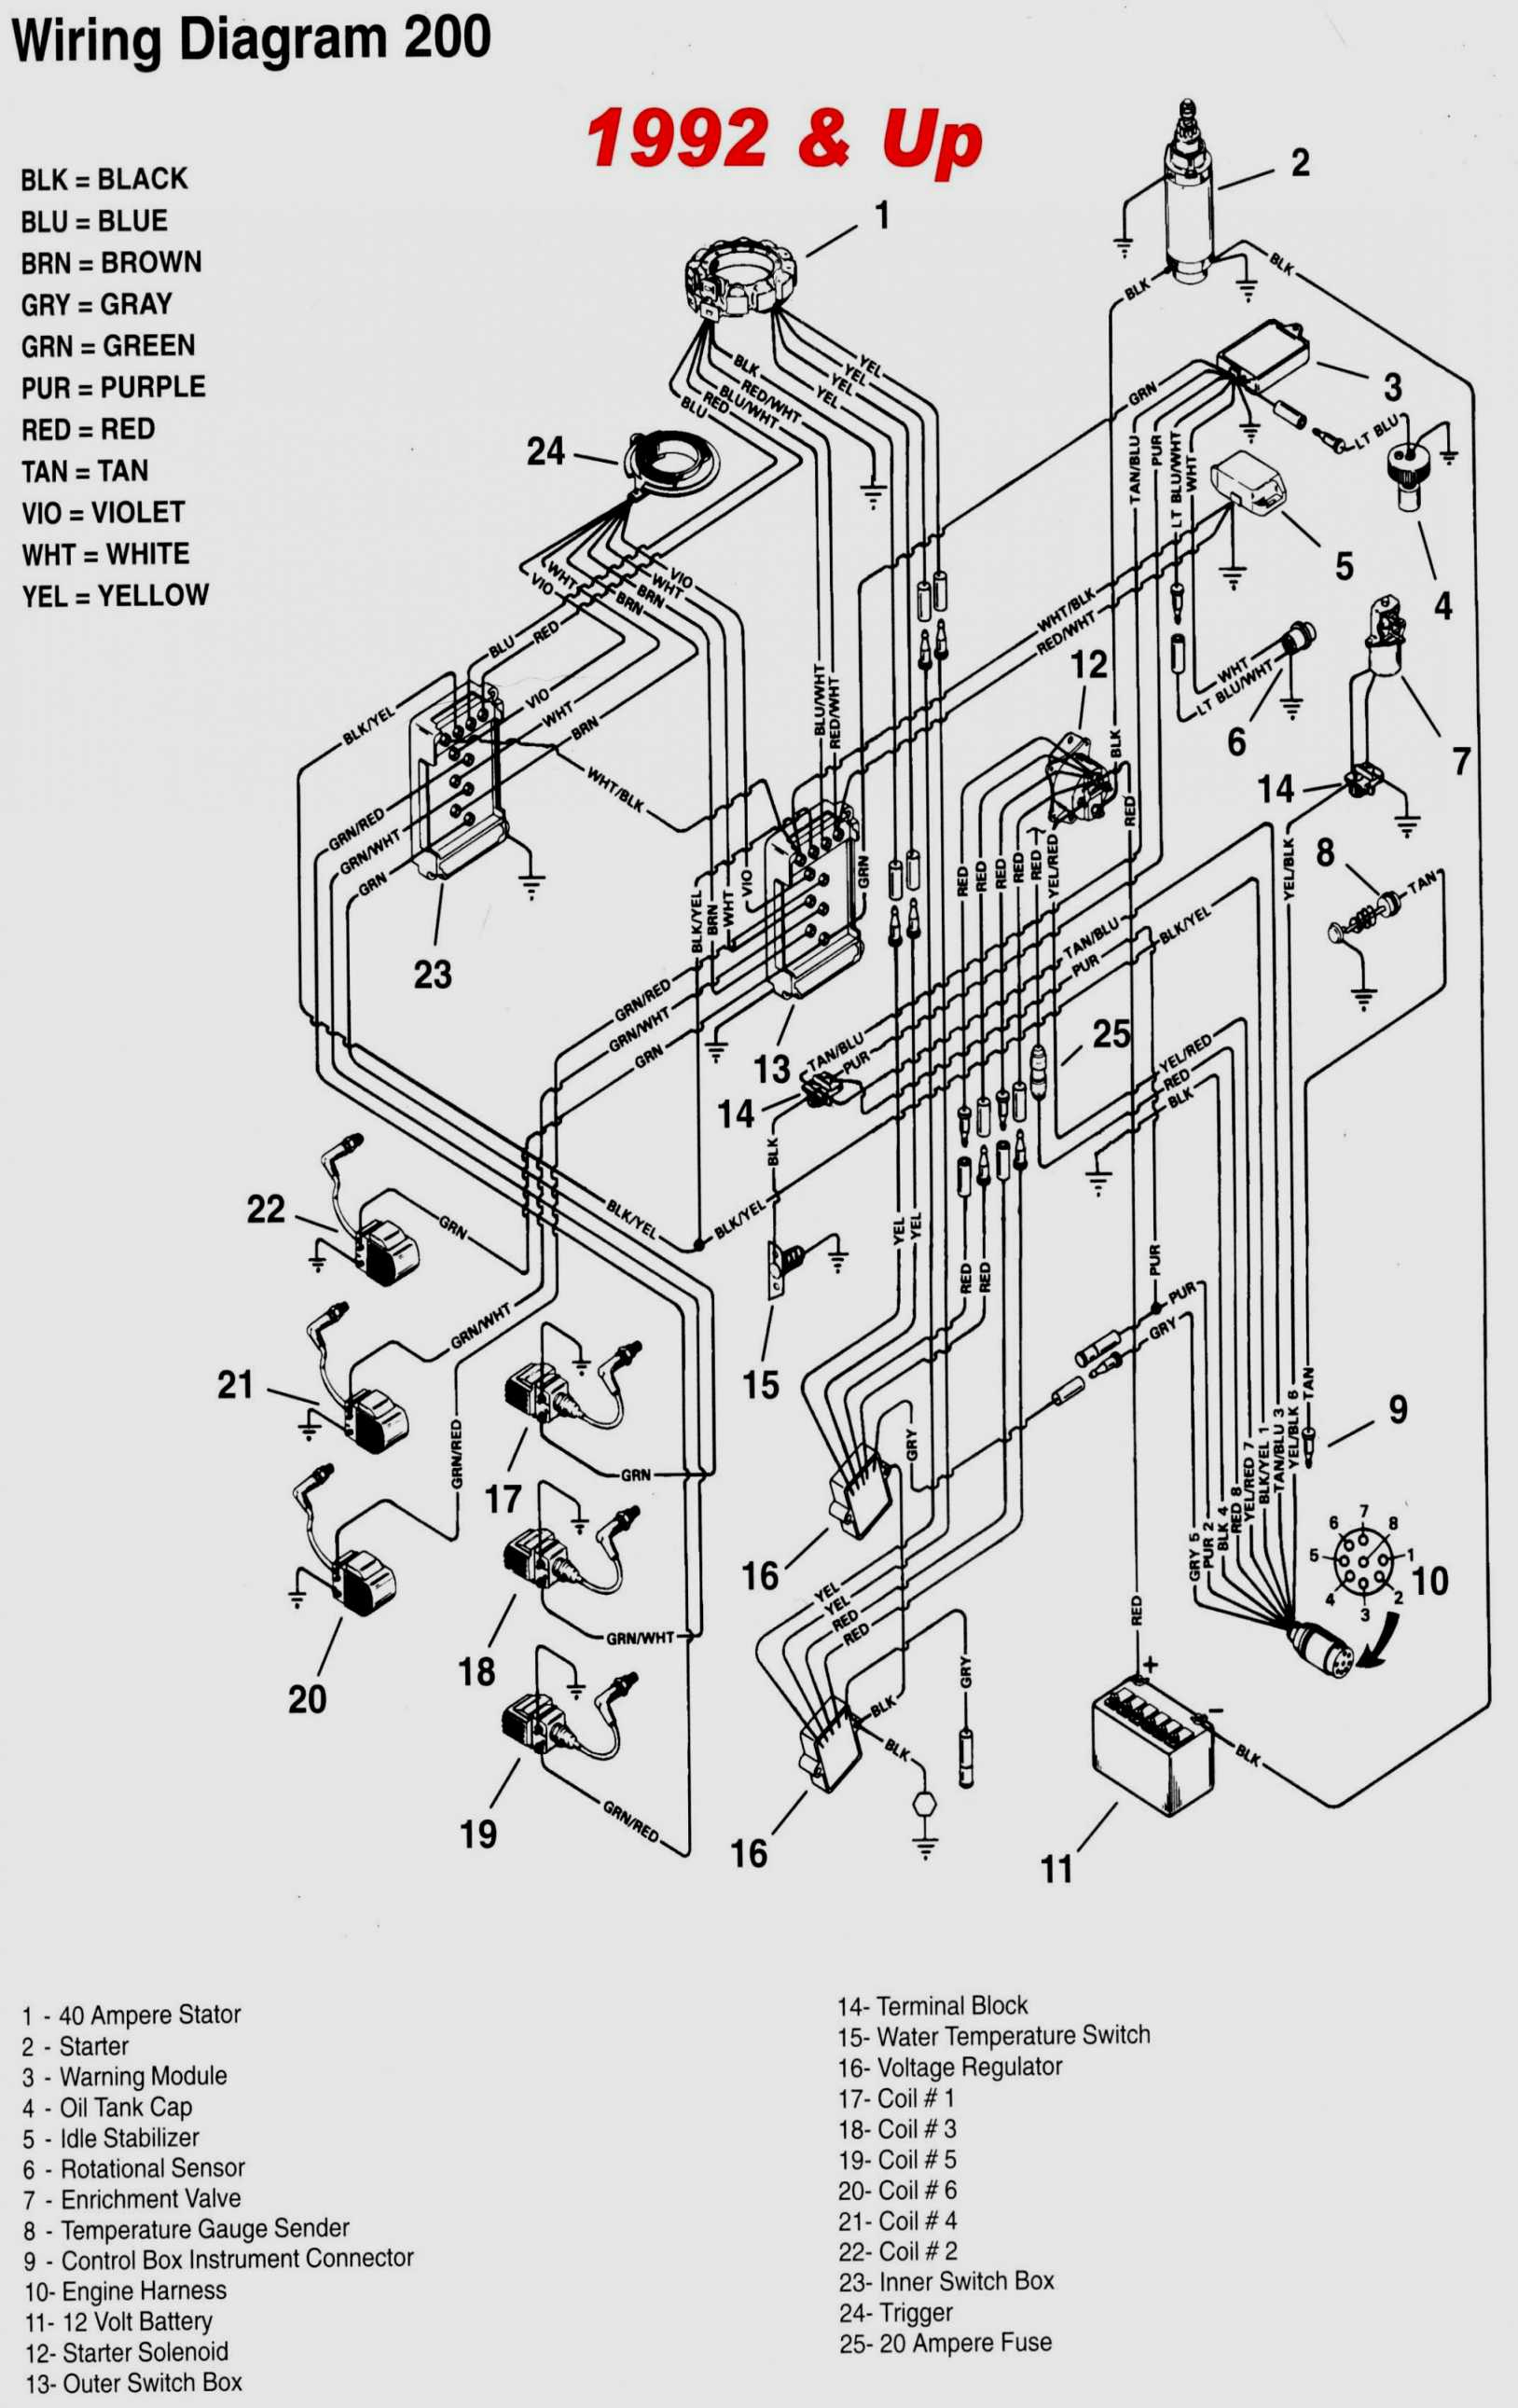 1987 50 Hp Johnson Wiring Diagram | Wiring Library - Johnson Outboard Wiring Diagram Pdf